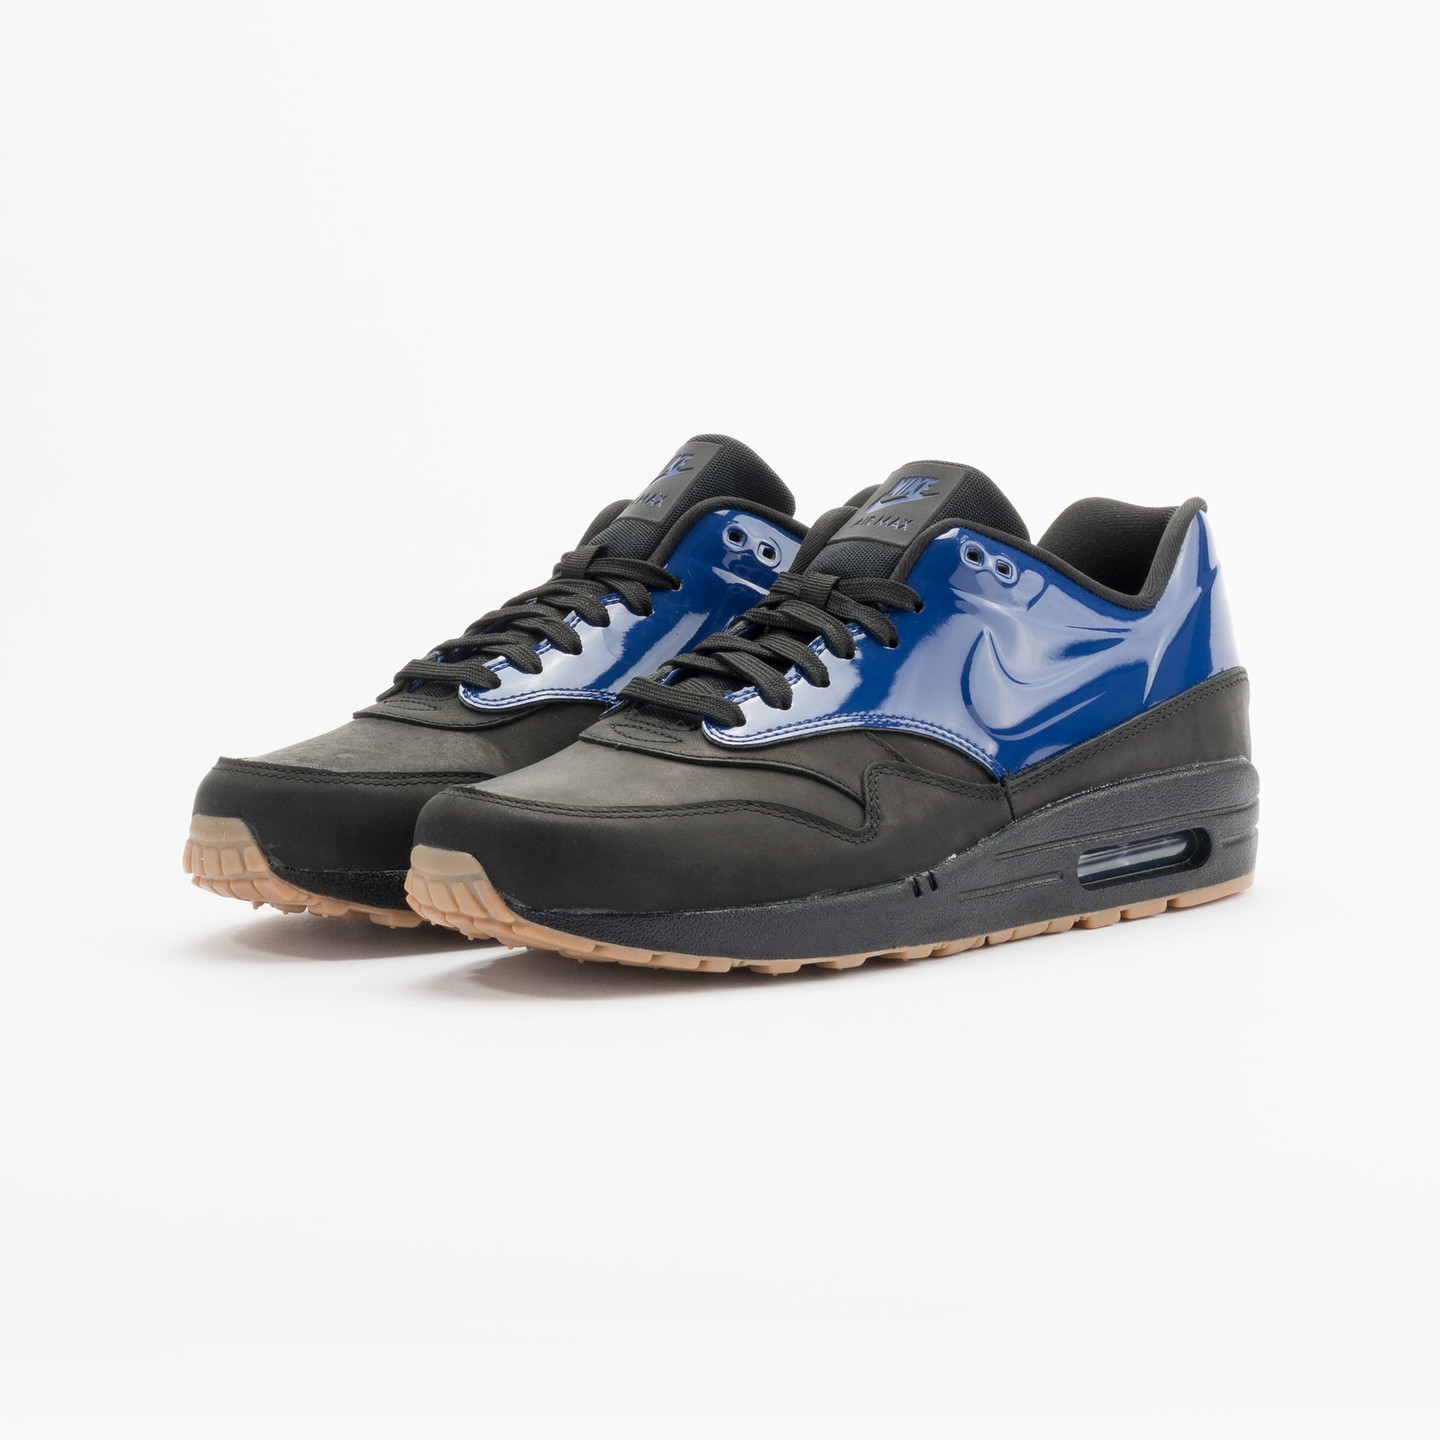 Nike Air Max 1 Vac Tech QS Deep Royal Blue / Black 831113-400-38.5